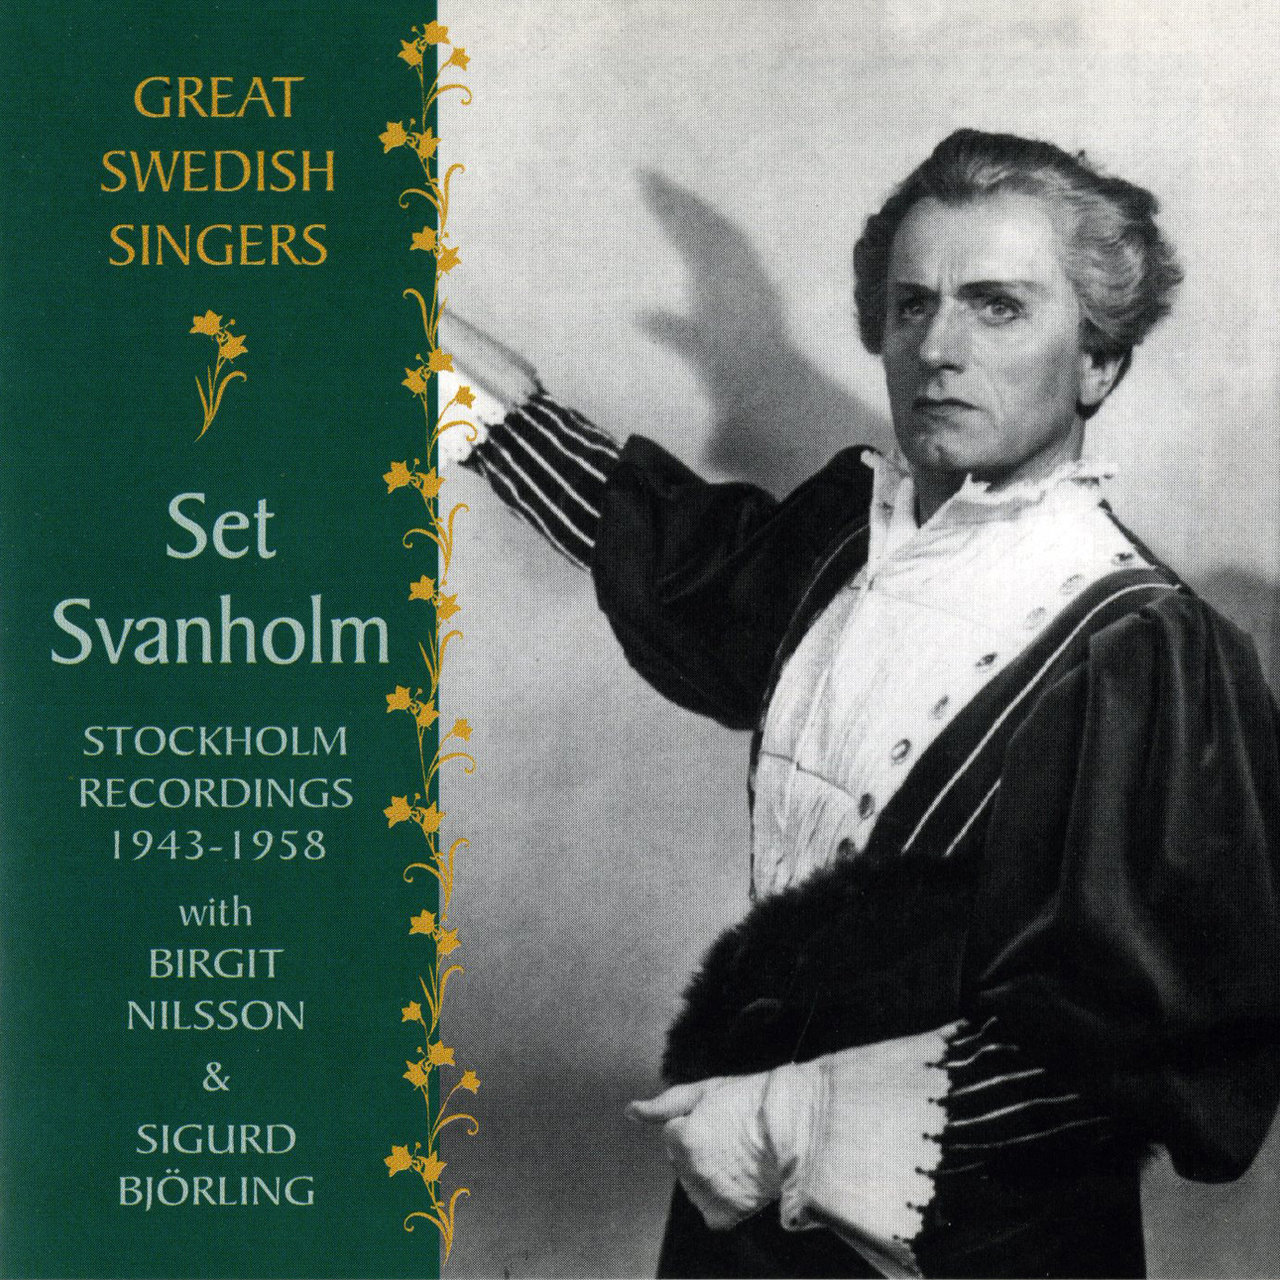 Tidal listen to great swedish singers set svanholm 1943 1958 on tidal - Durch wande horen app ...